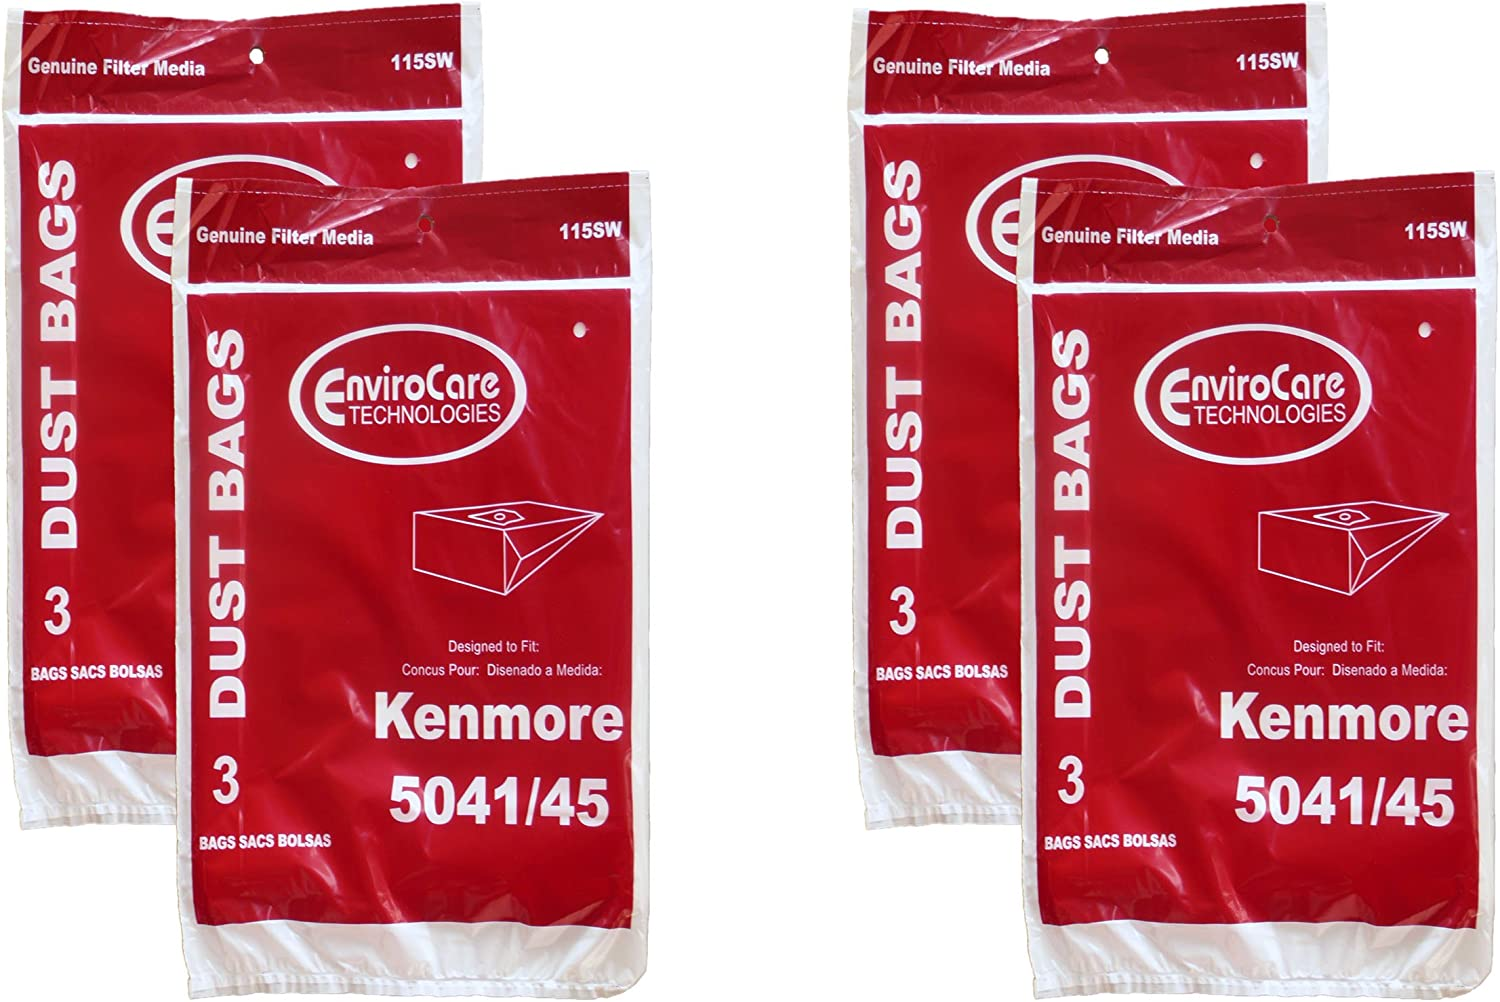 12 Kenmore #20-5045 Type H Canister Vacuum Cleaner Bag Model 203040 24025 23040 20035, 20350, 20395, 24031, 24200, 24203, 21040, 24205, 24300, 25170, 25250, 25300, 25320, 26350, 26355, 27320, 28320, 28350, 29035, 29200, #02050001000, #609218